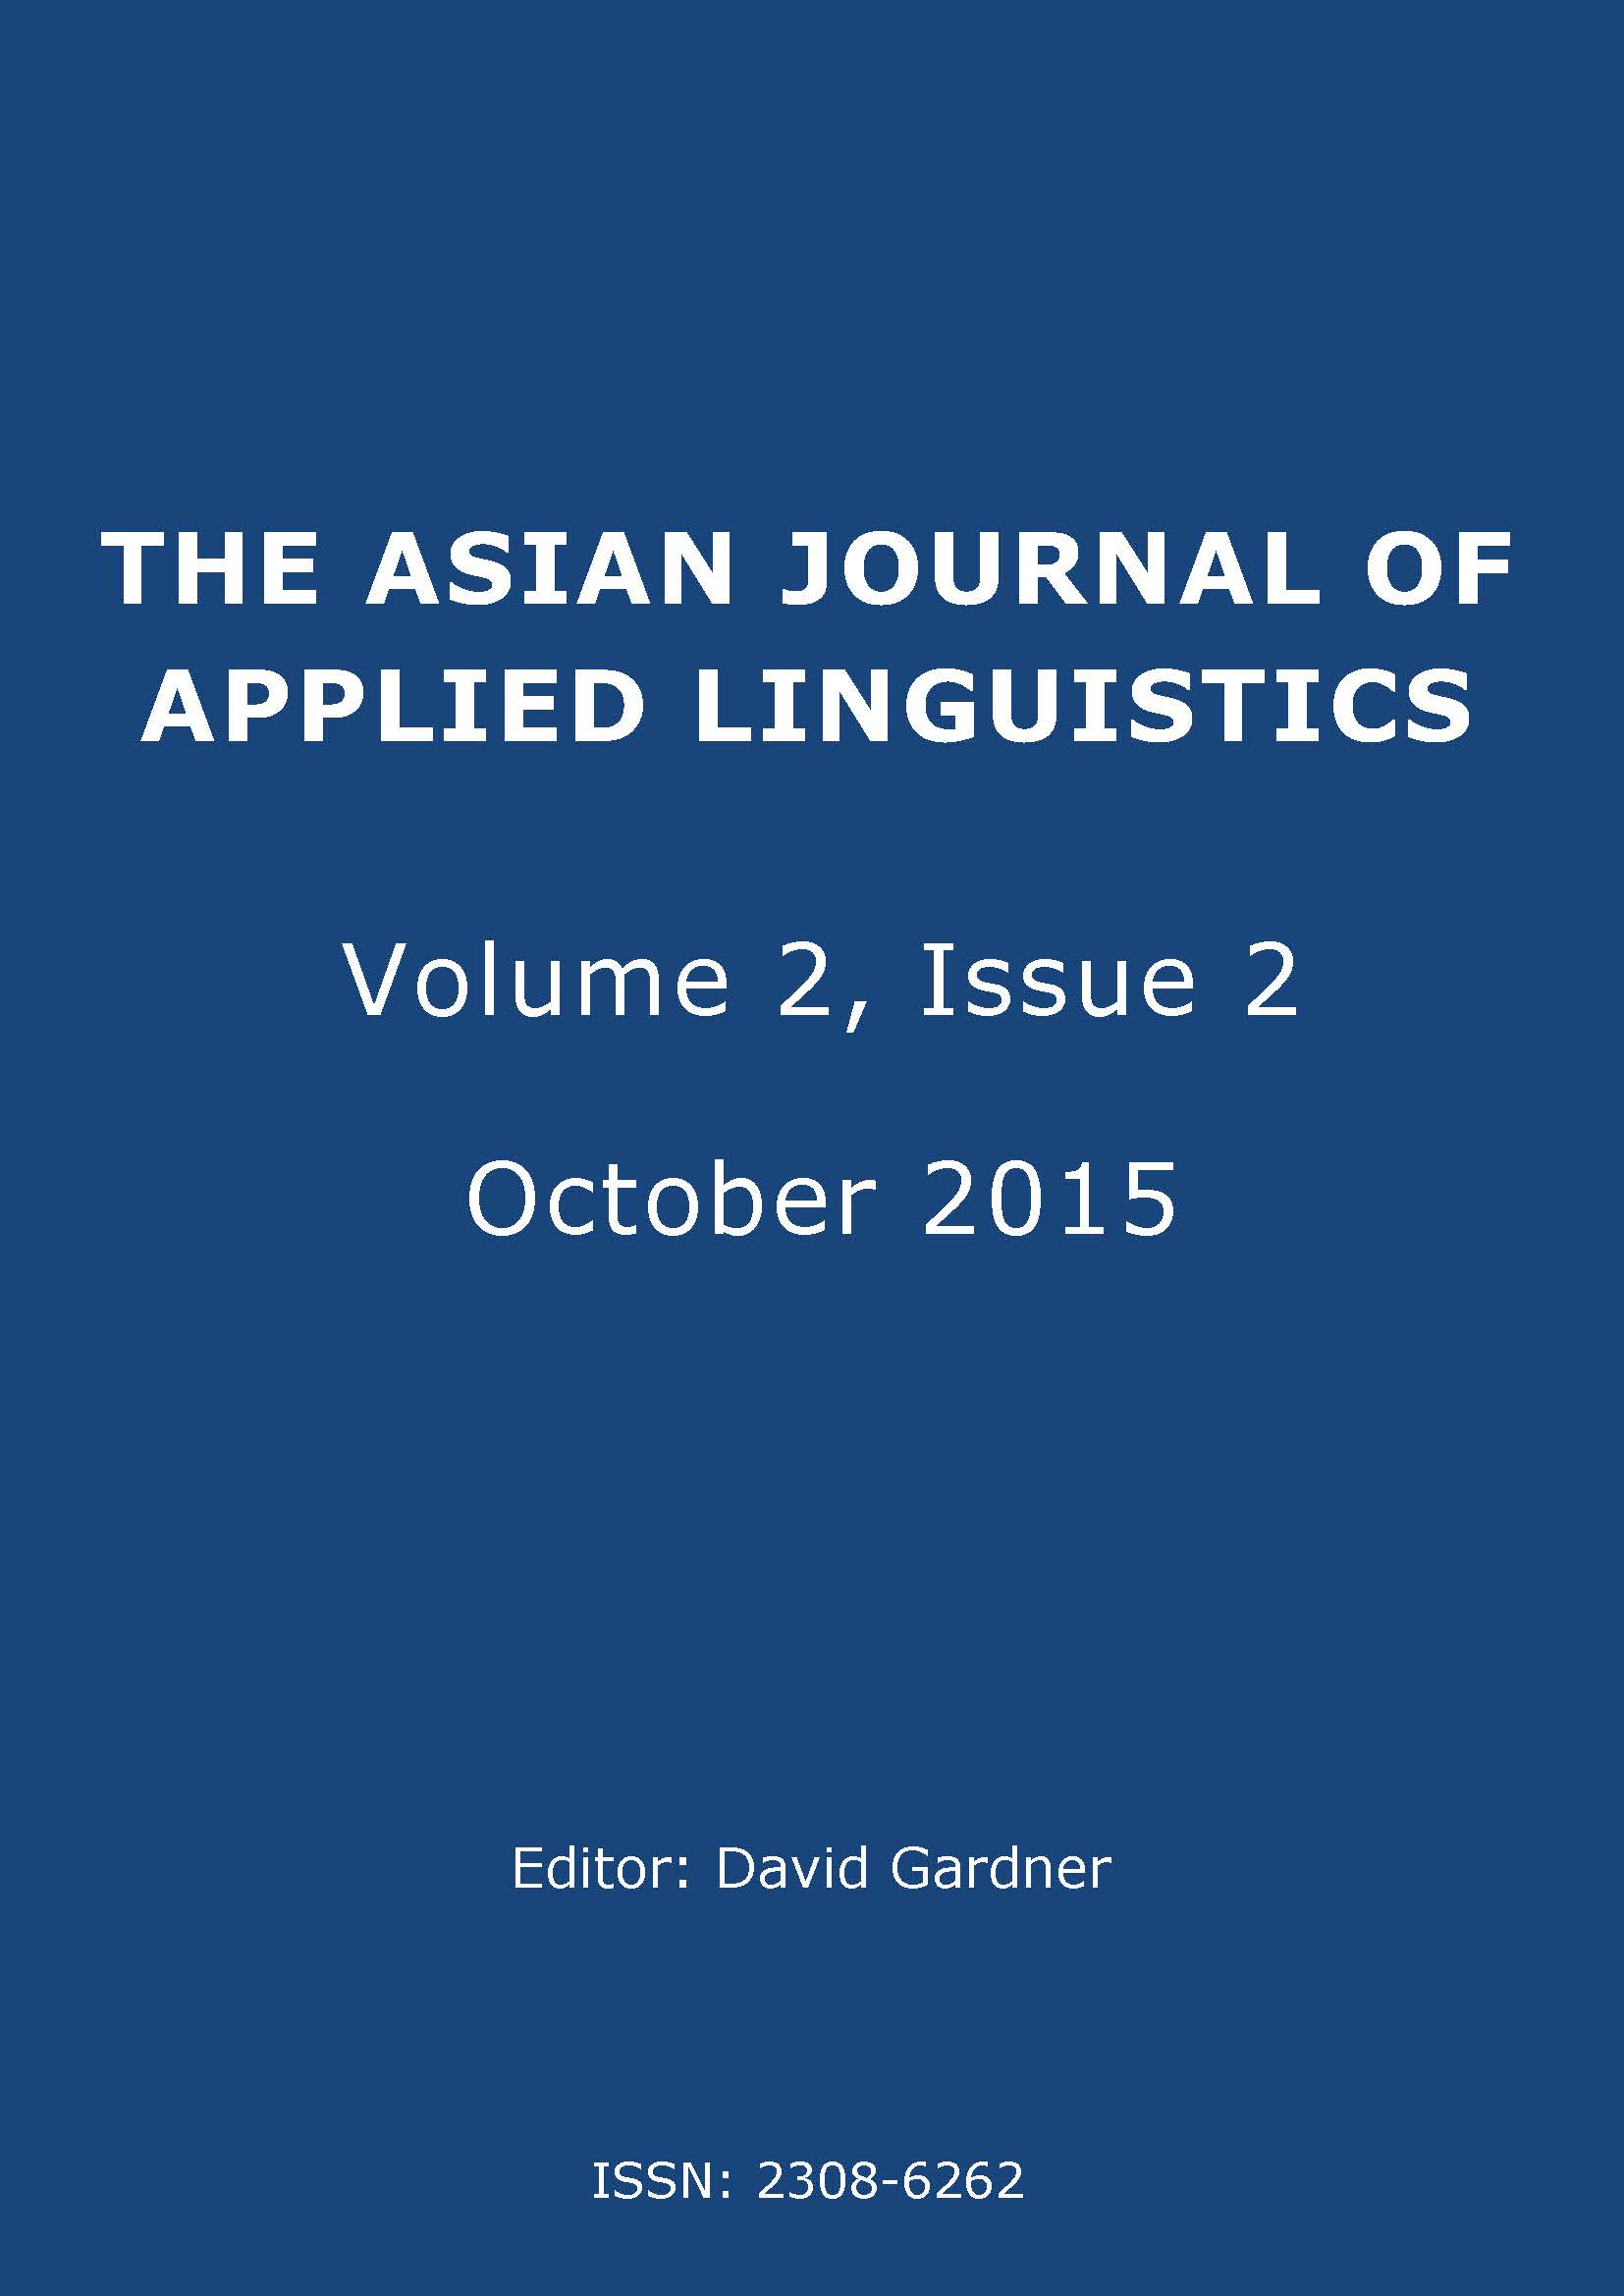 The Asian Journal of Applied Linguistics. Volume 2. Issue 2. October 2015